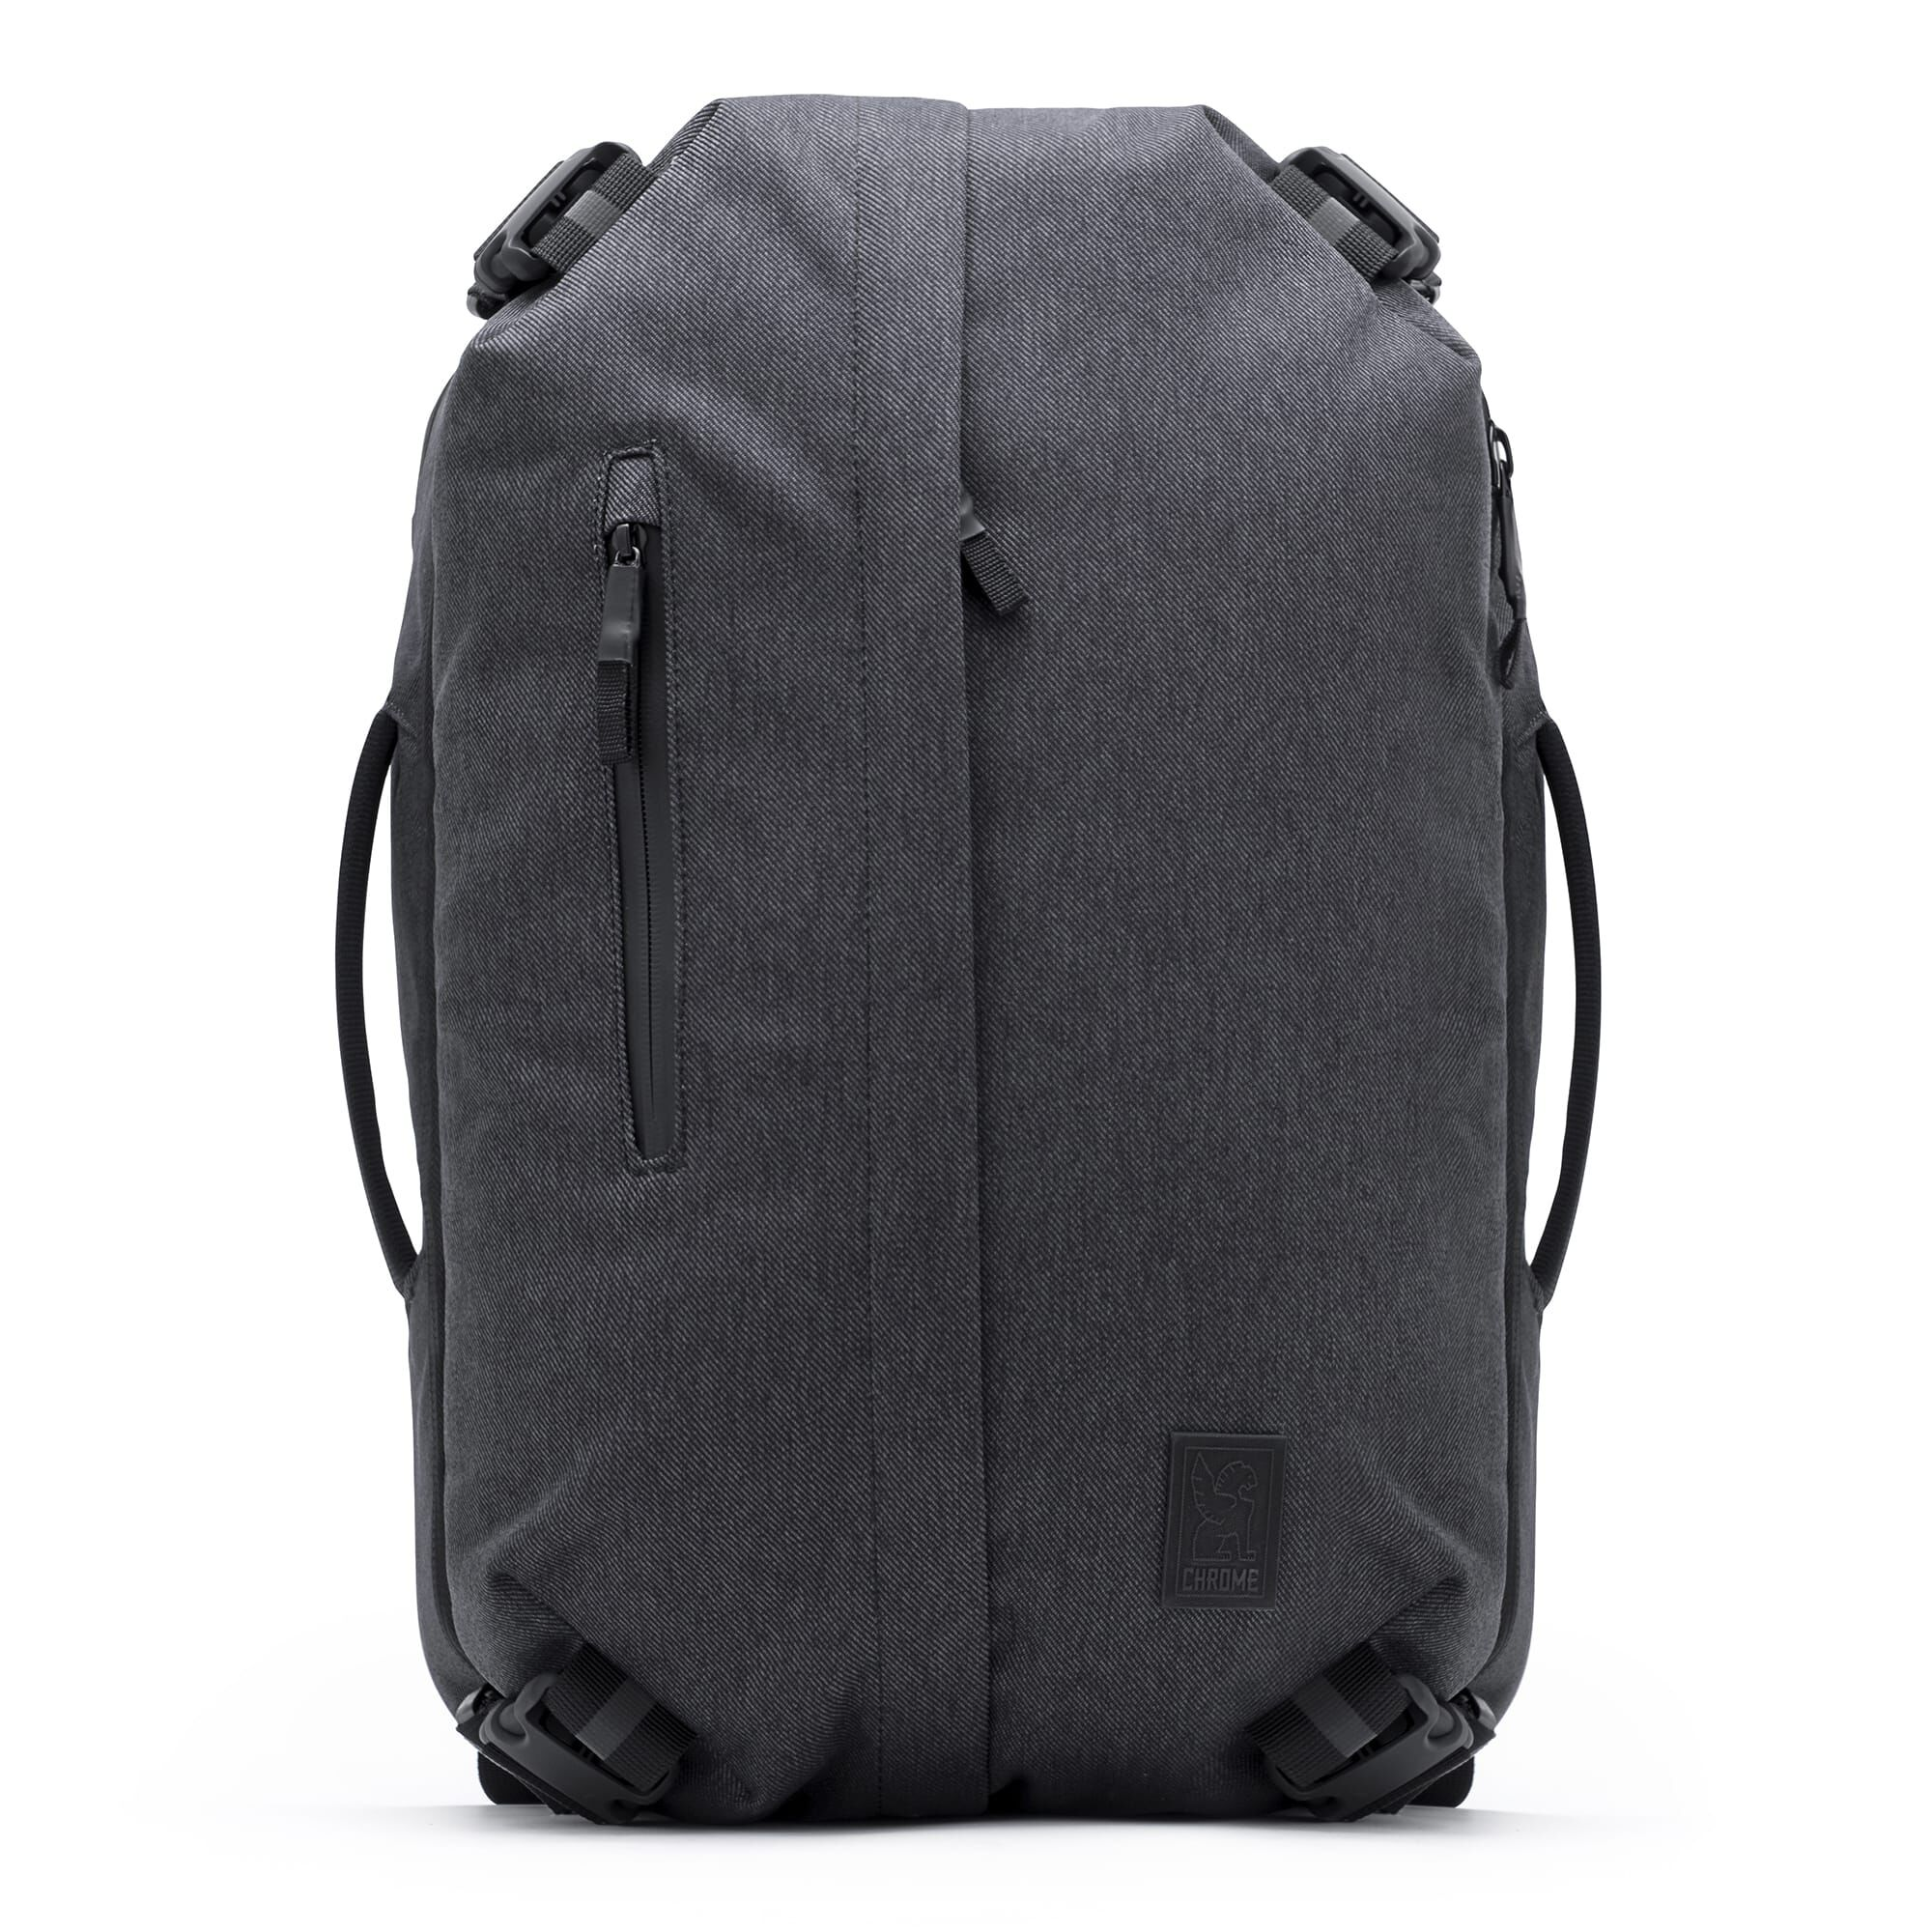 e8fcc77e189d Summoner Backpack - Fits laptops up to 15